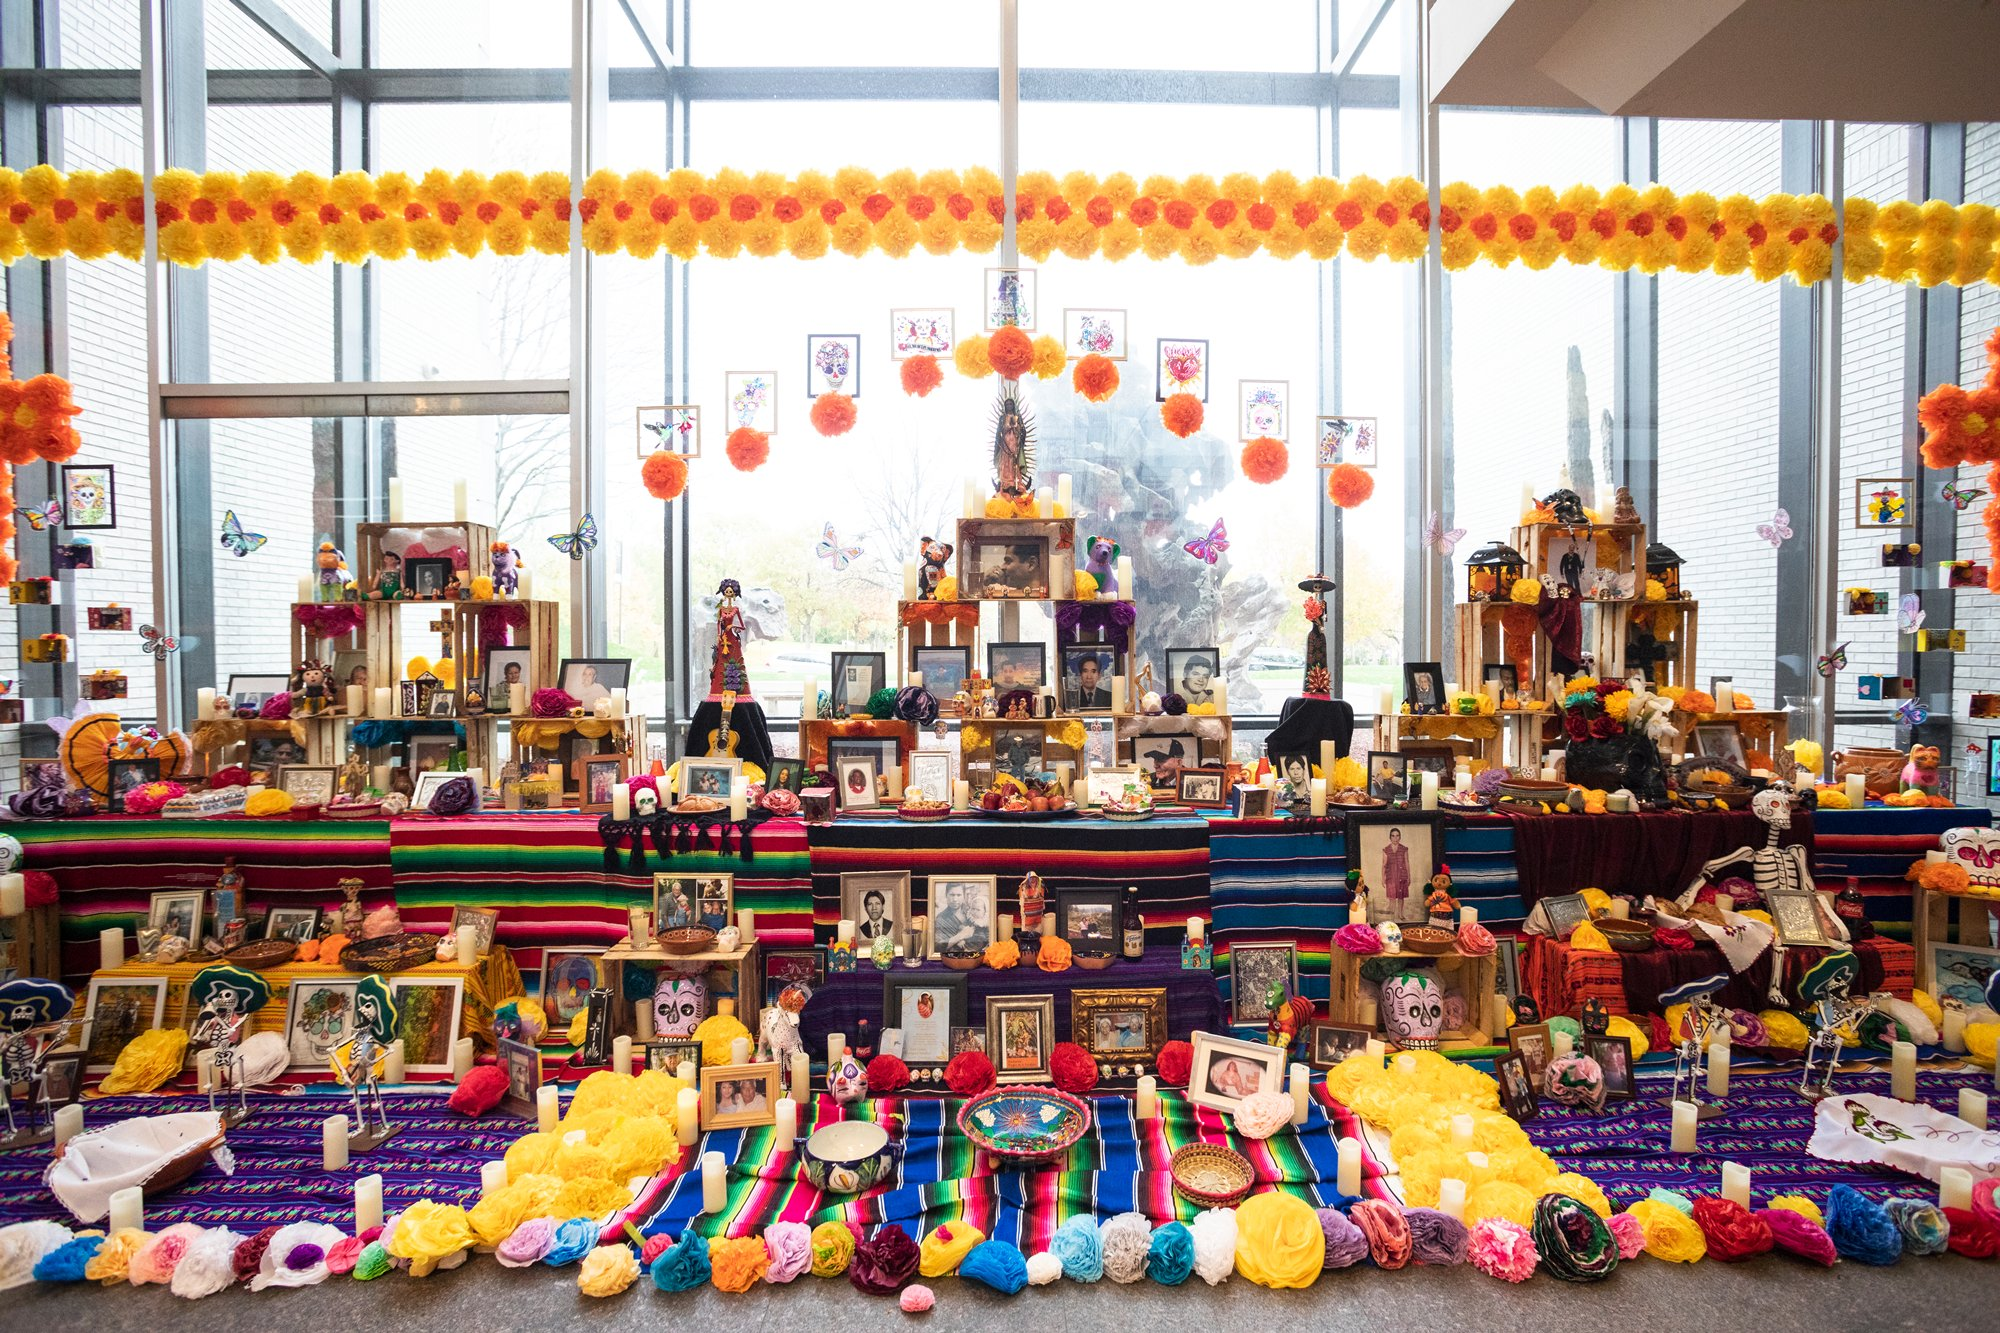 An image of an ofrenda installed in the museum lobby for Dia de los Muertos.